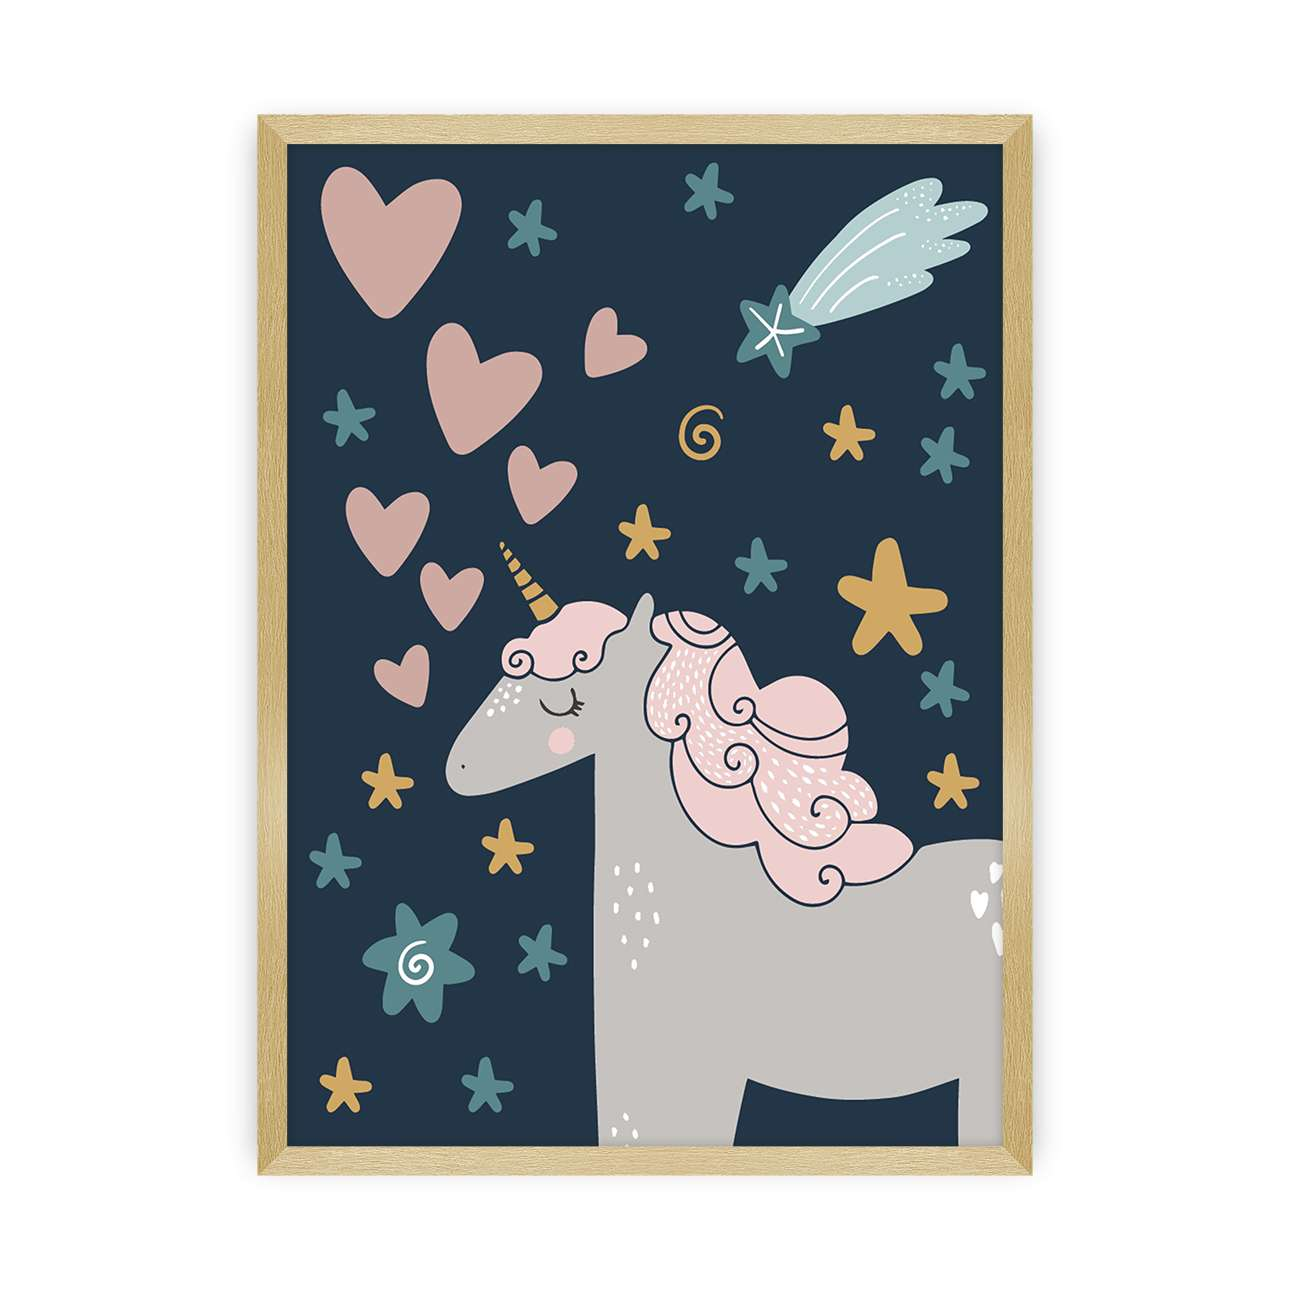 Lovely Unicorn II picture